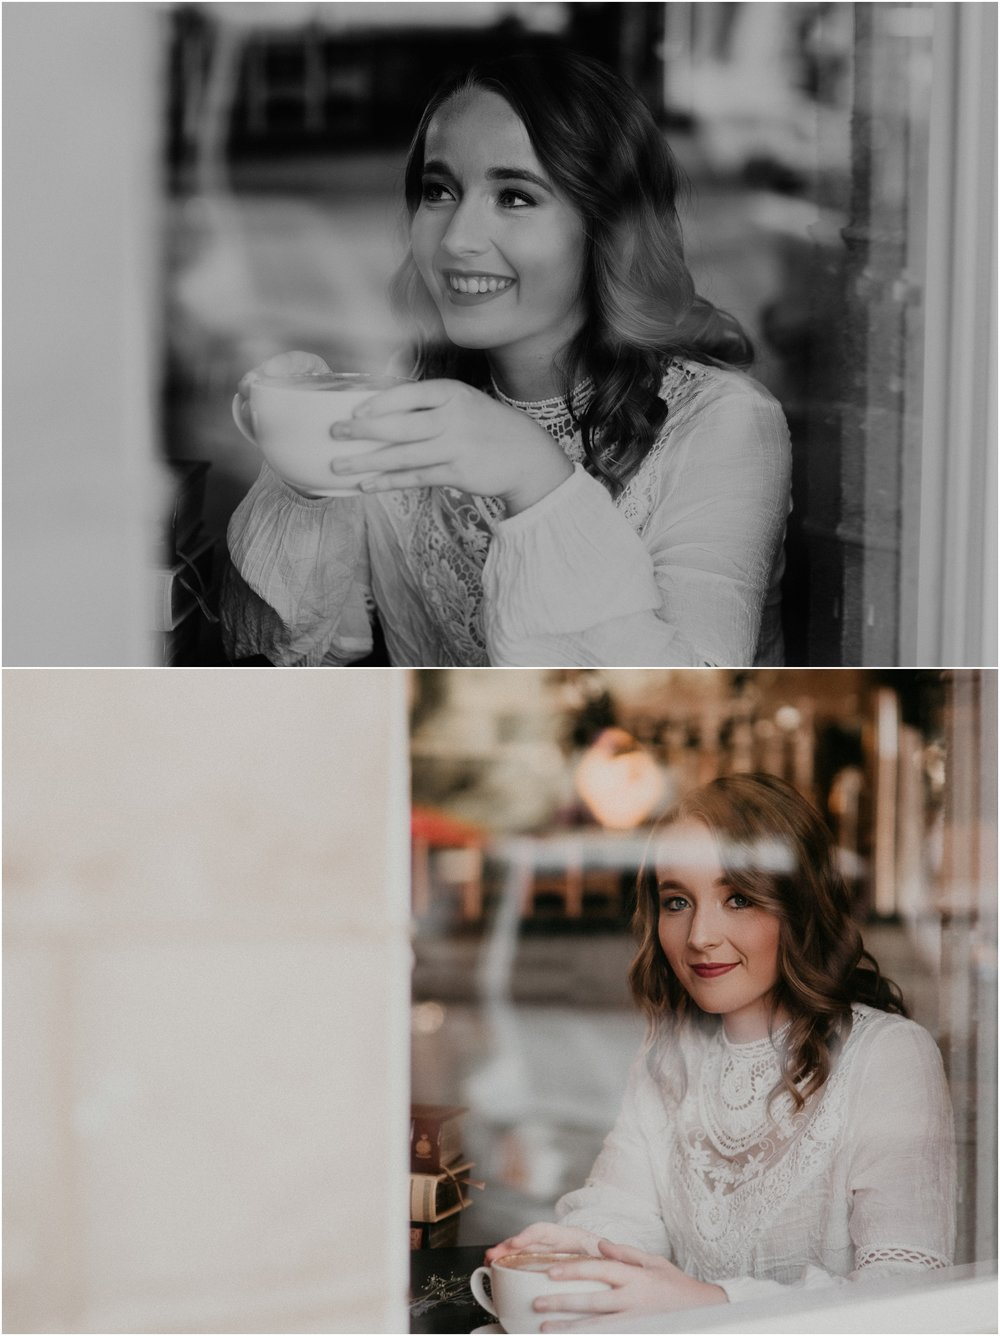 Makayla Madden Photography Boise Senior Photographer Eagle Idaho Brim Coffee House Sketching Artistic Senior Pictures Class of 2018 Coffee Shop Portraits